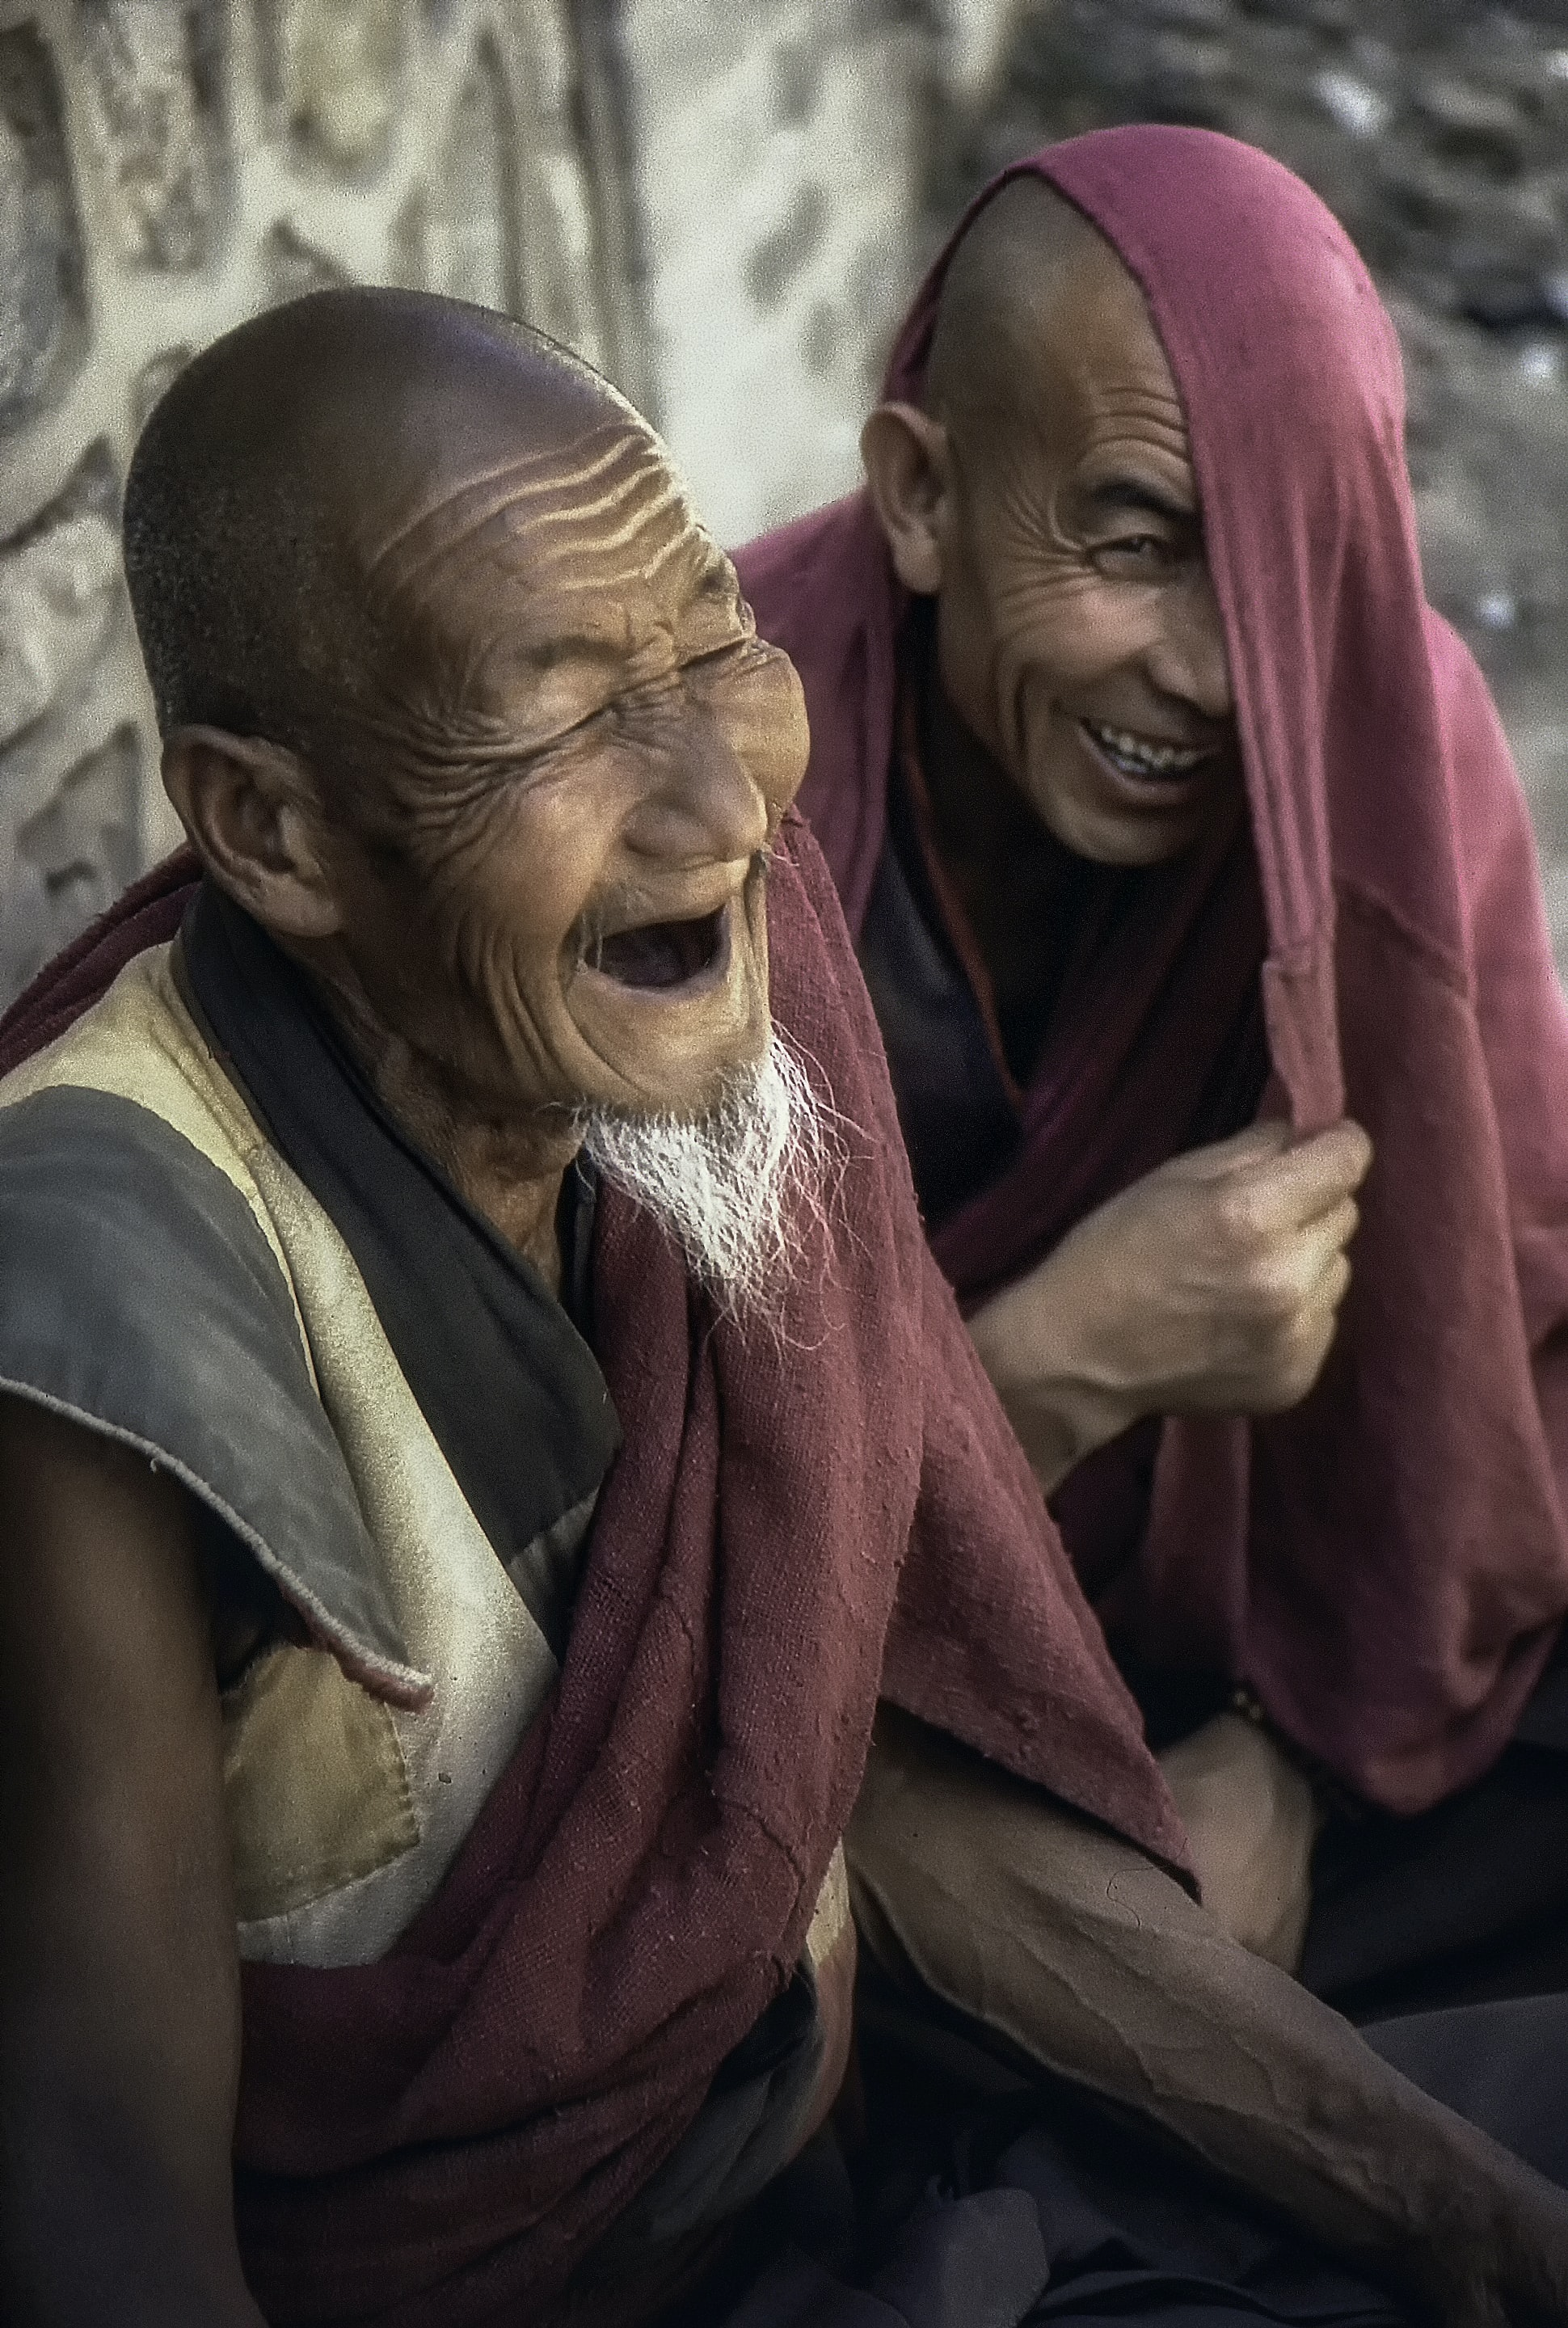 two laughing men near gray wall during daytime